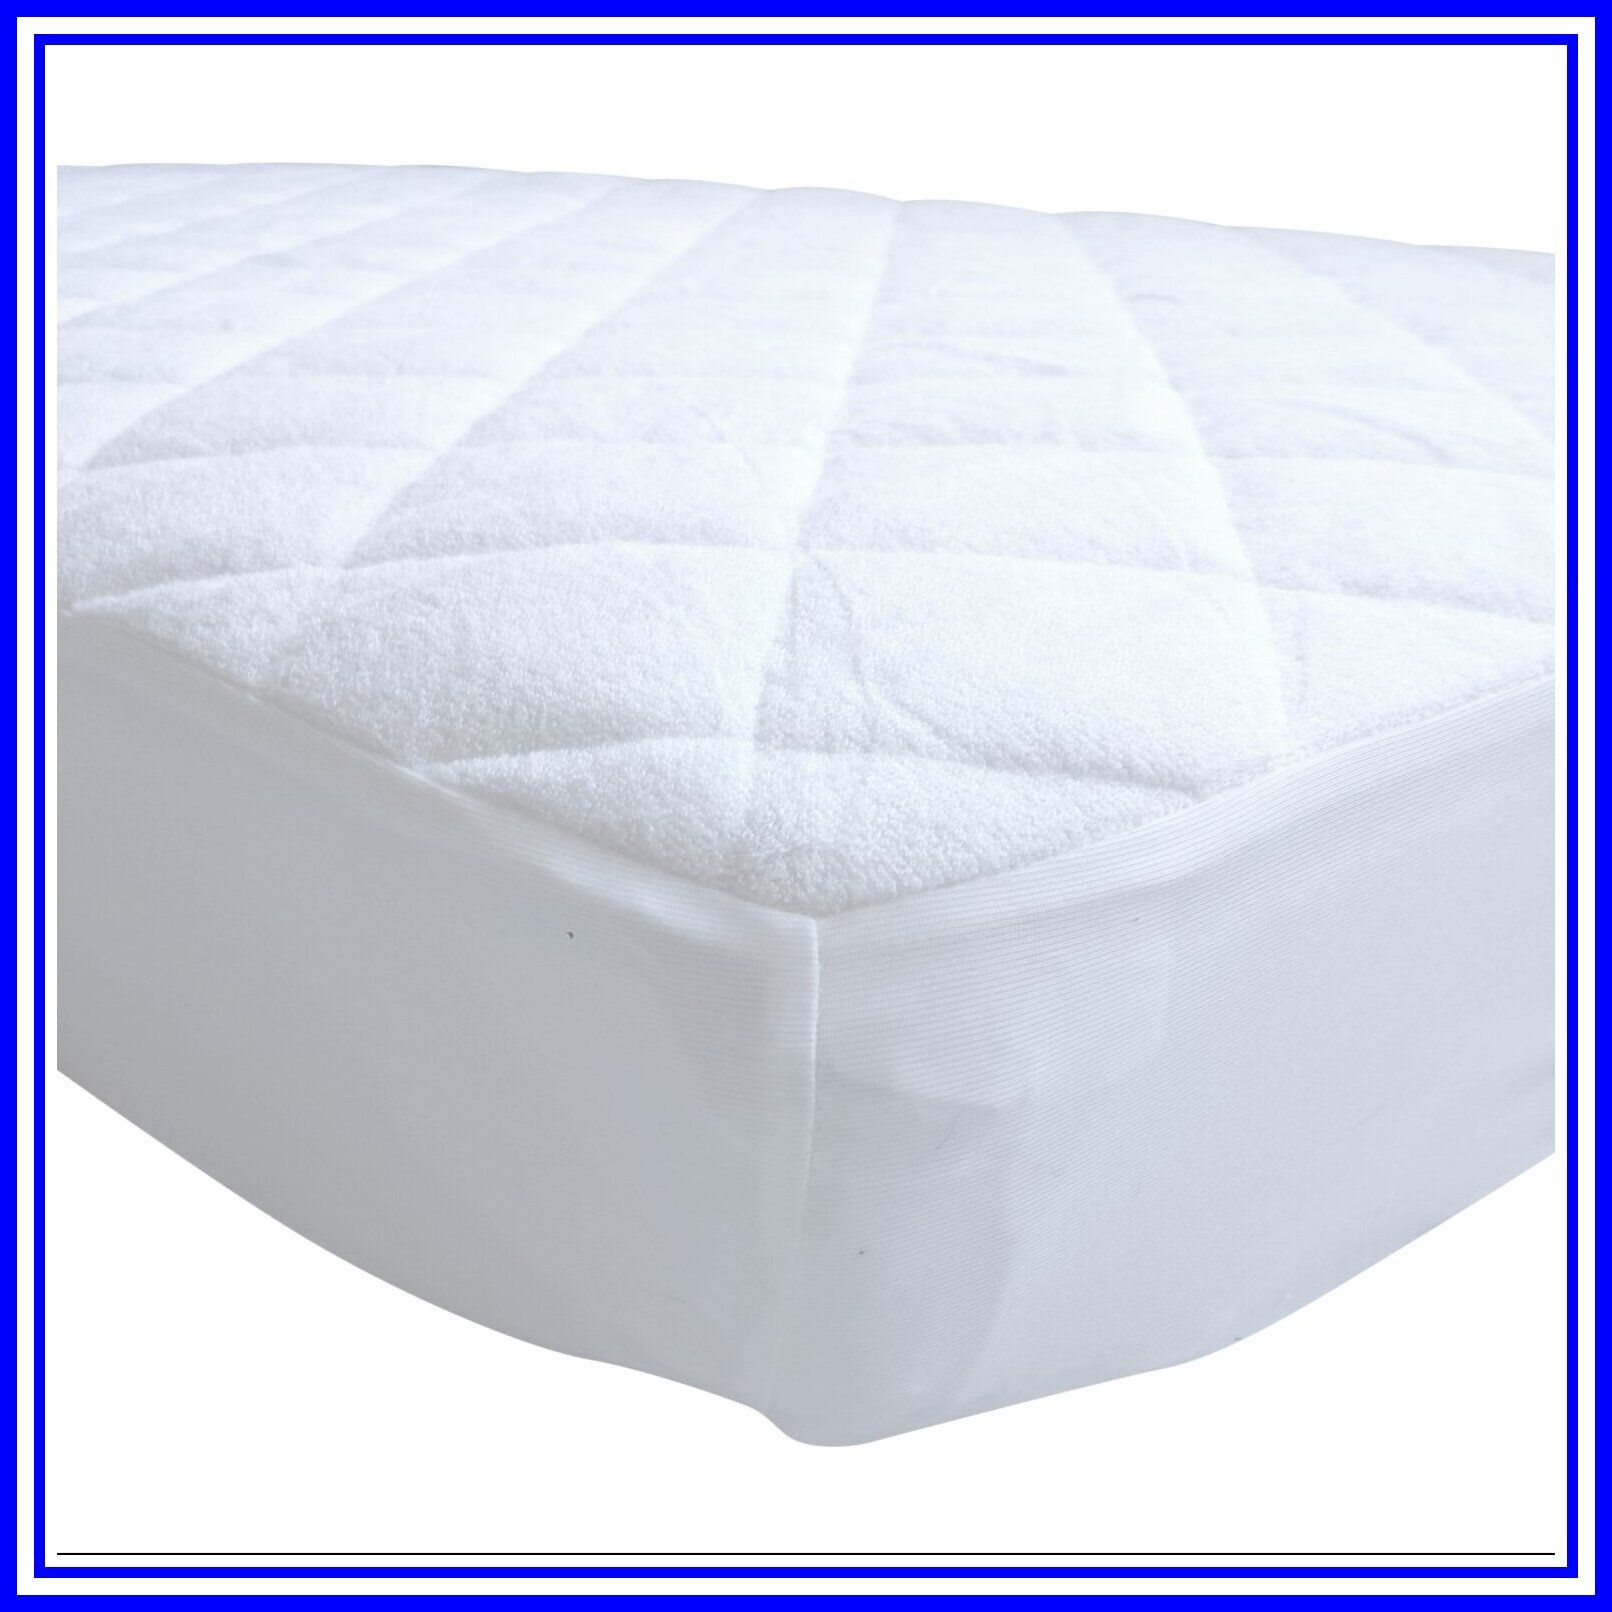 80 Reference Of Crib Mattress Cover Safety In 2020 Crib Mattress Pad Waterproof Crib Mattress Cover Toddler Bed Mattress